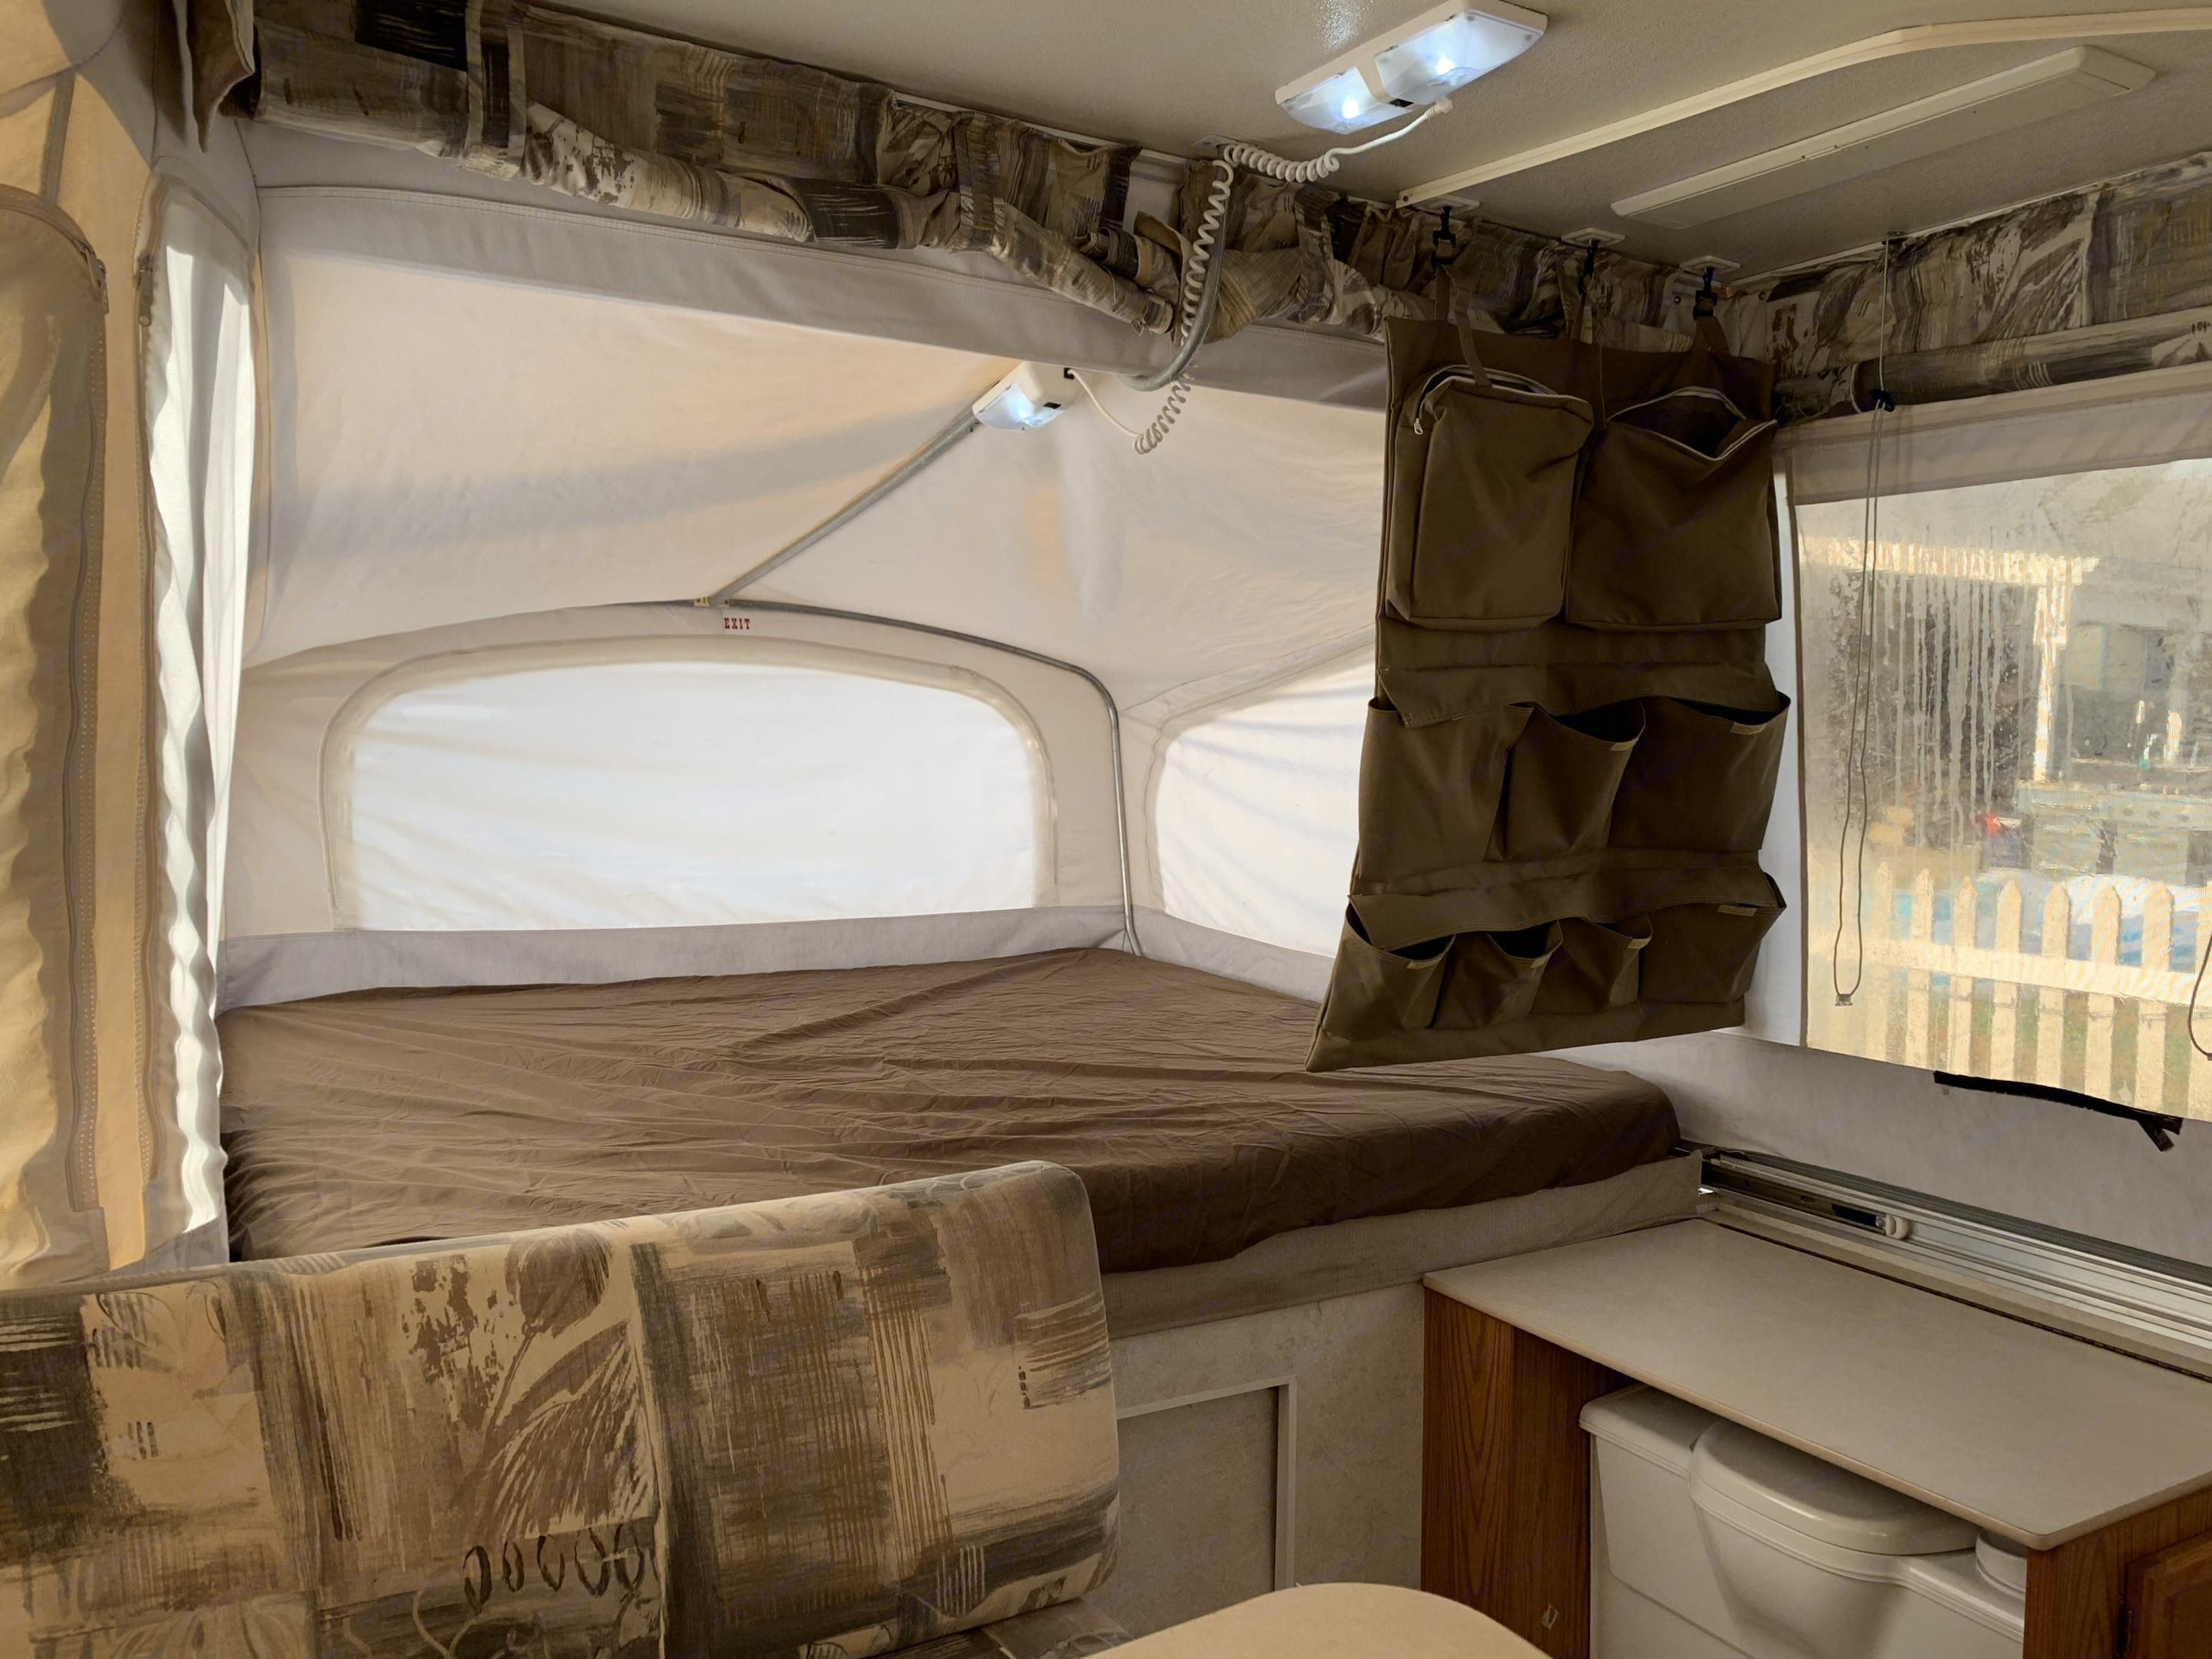 King size beds with windows and privacy shades. . Jayco Heritage Cascade 2001